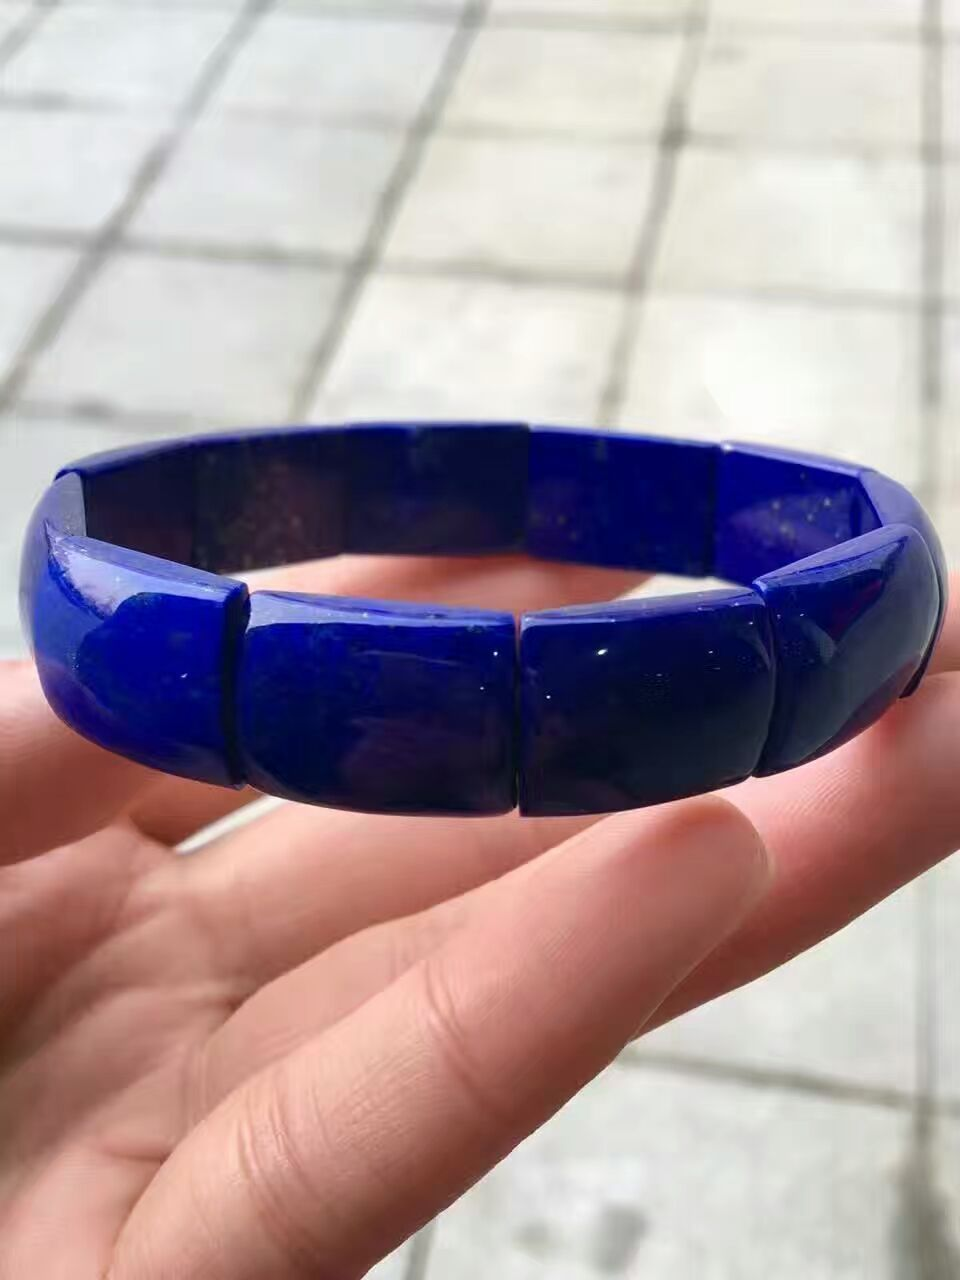 2018 Newly Genuine Natural Royal Blue Lapis Lazuli Gems Stone Pendant Rectangle Beads Women Man Bracelet Bangle AAAAA 20x13mm